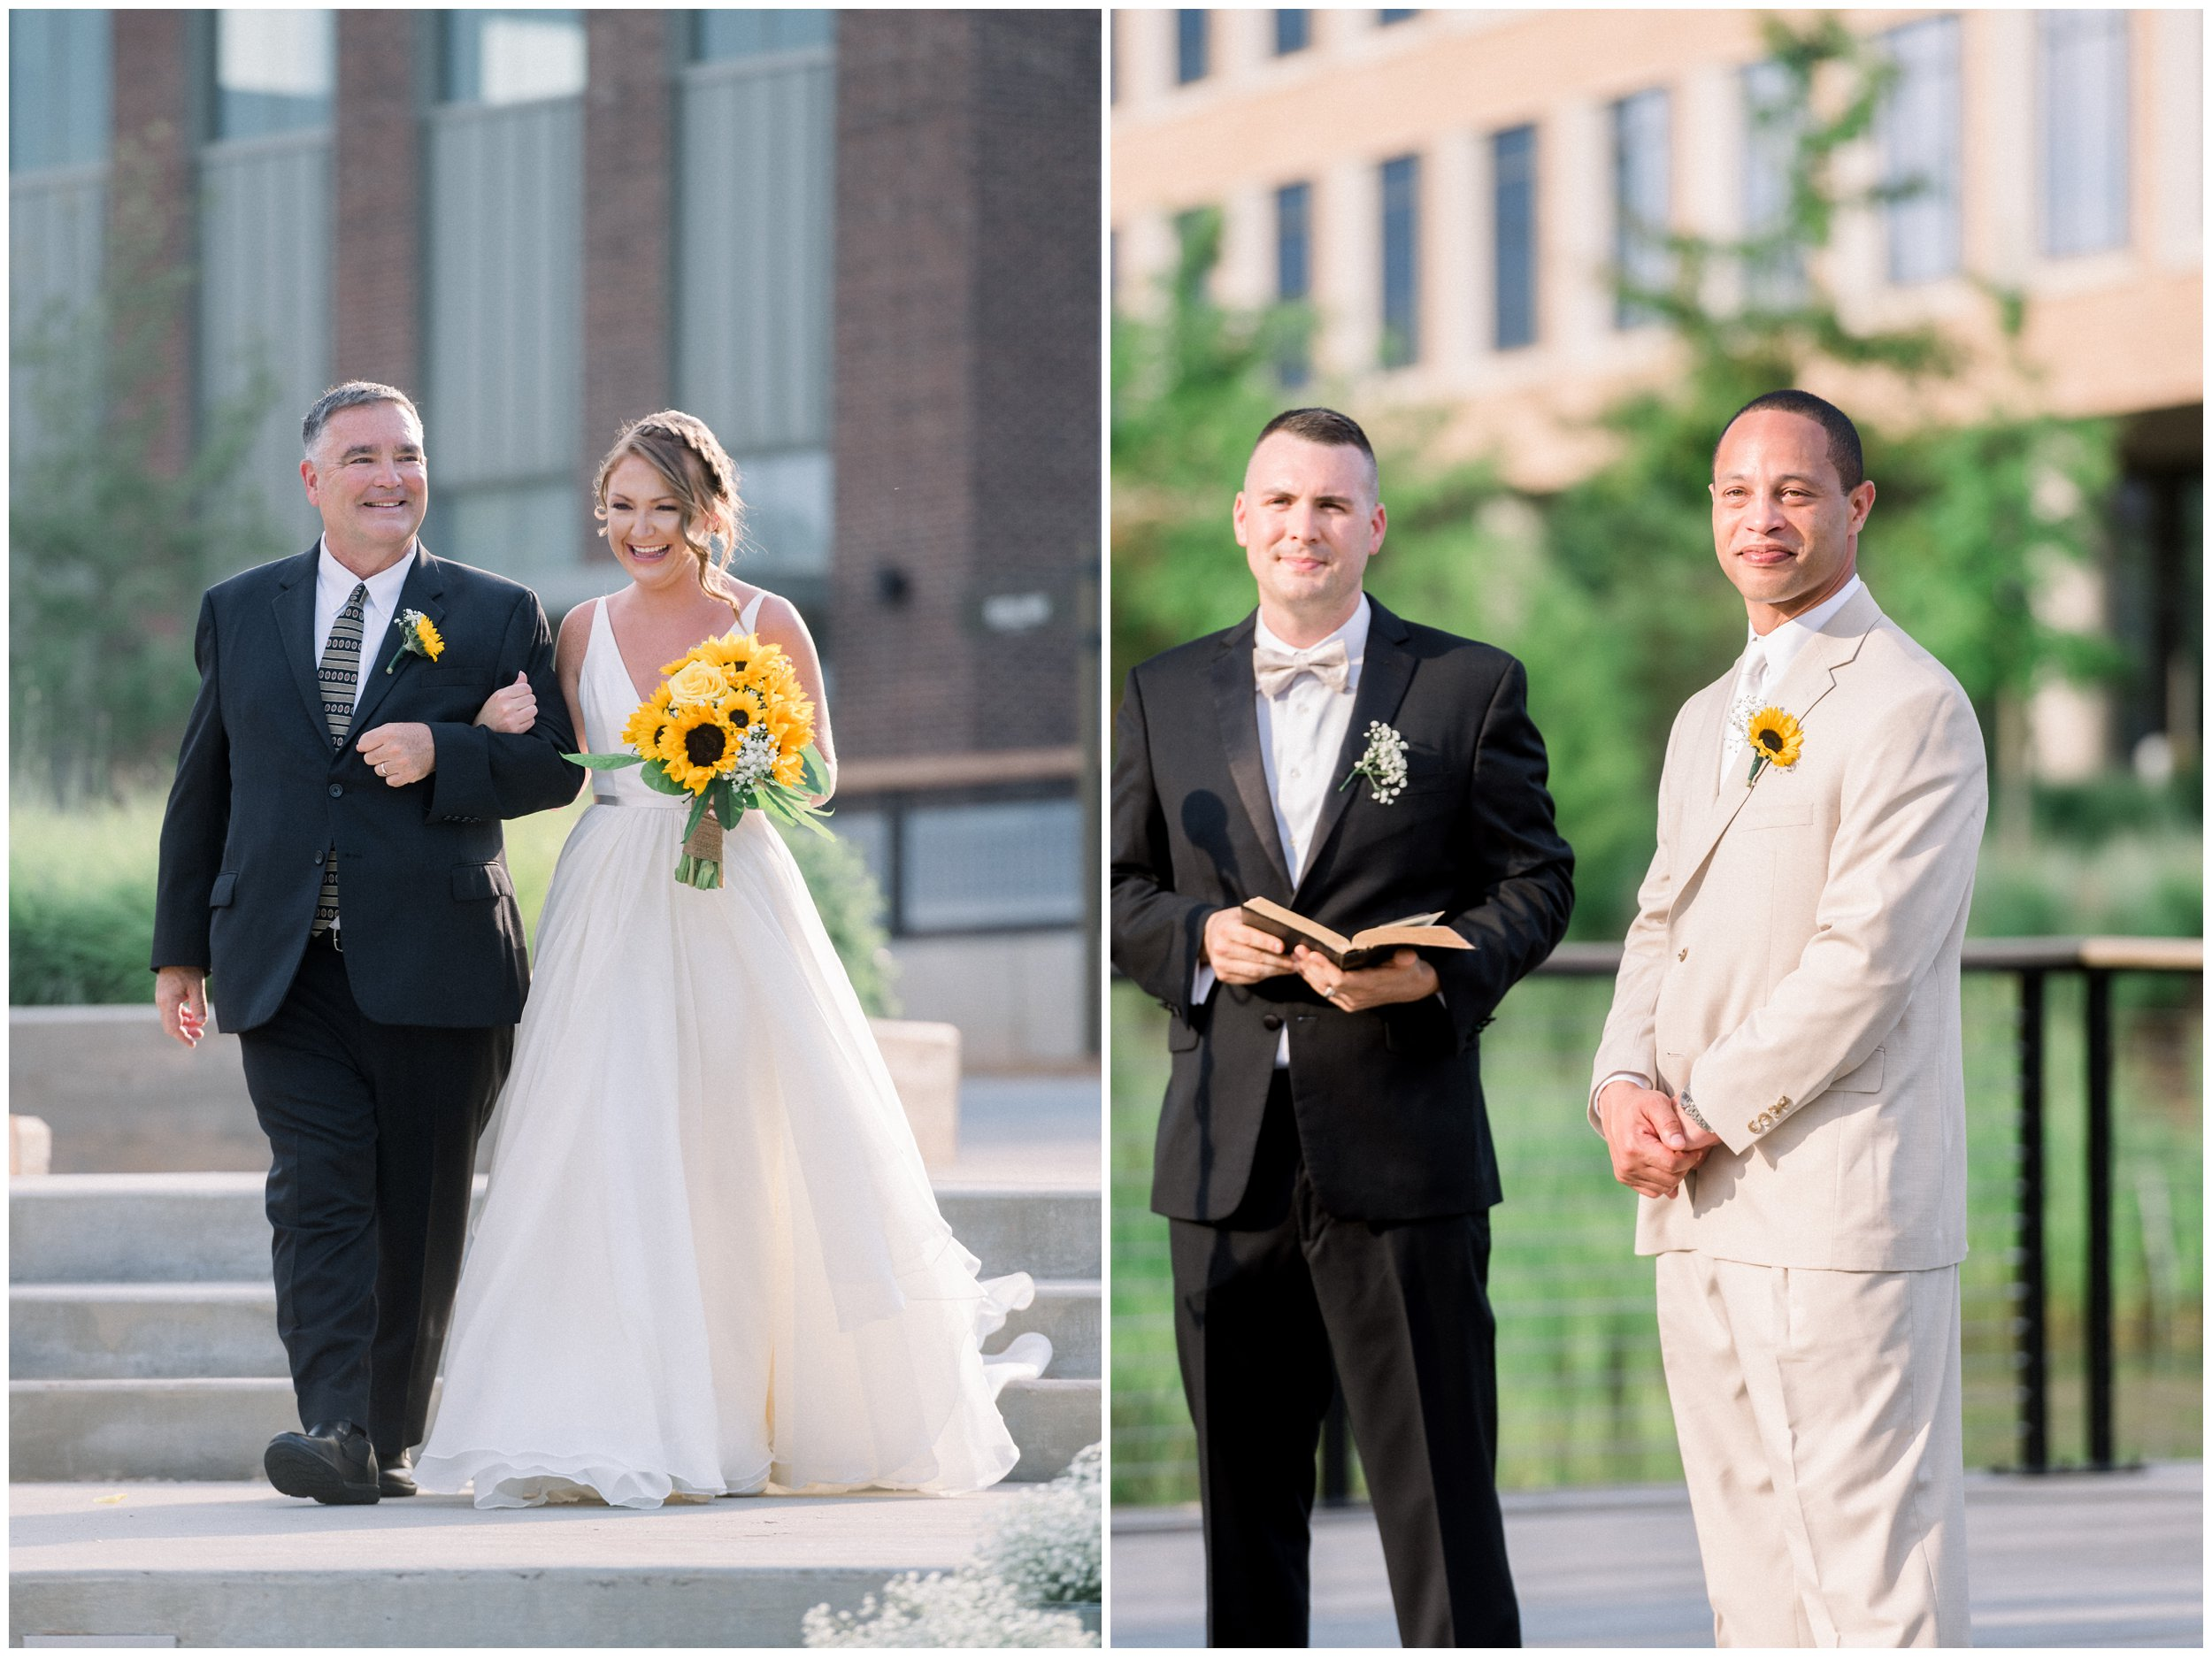 Father walking daughter down the aisle while groom waits for her